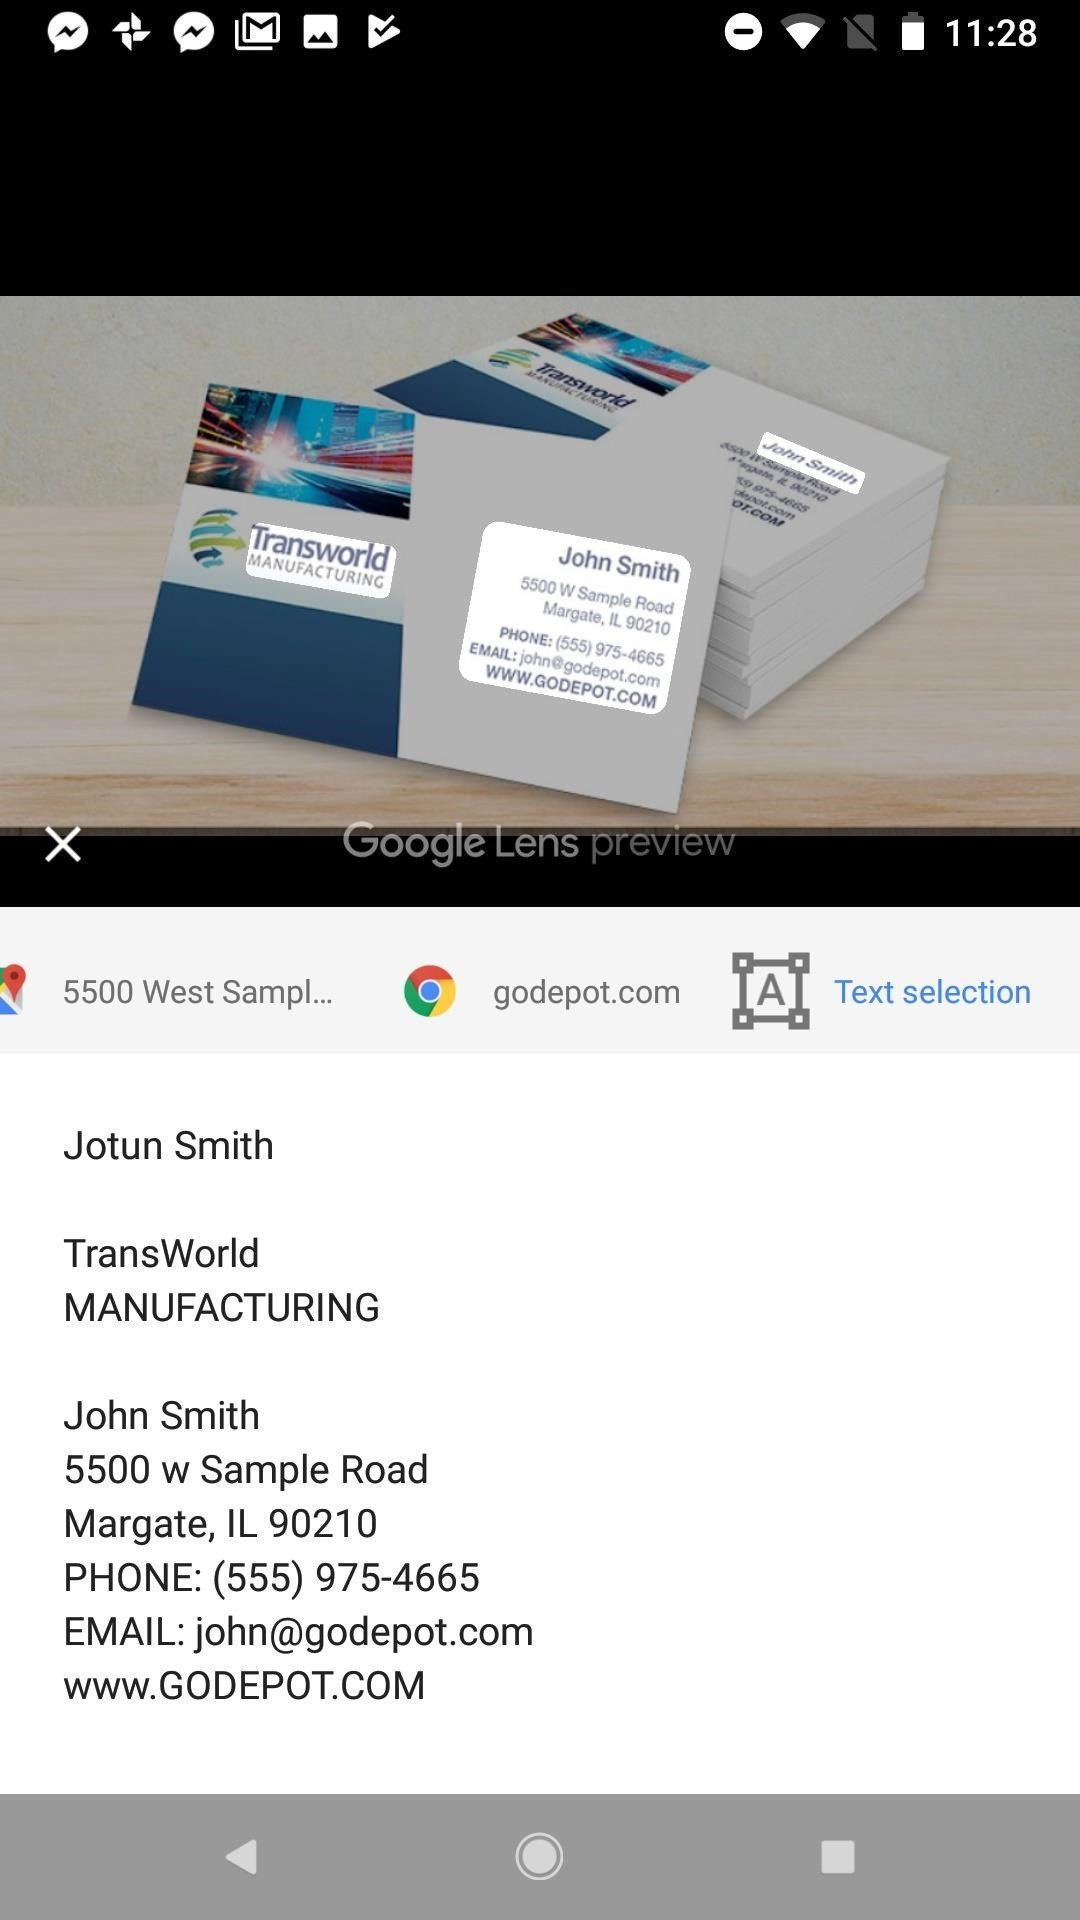 Google Photos 101: How to Use Google Lens to Save Contact Info from ...